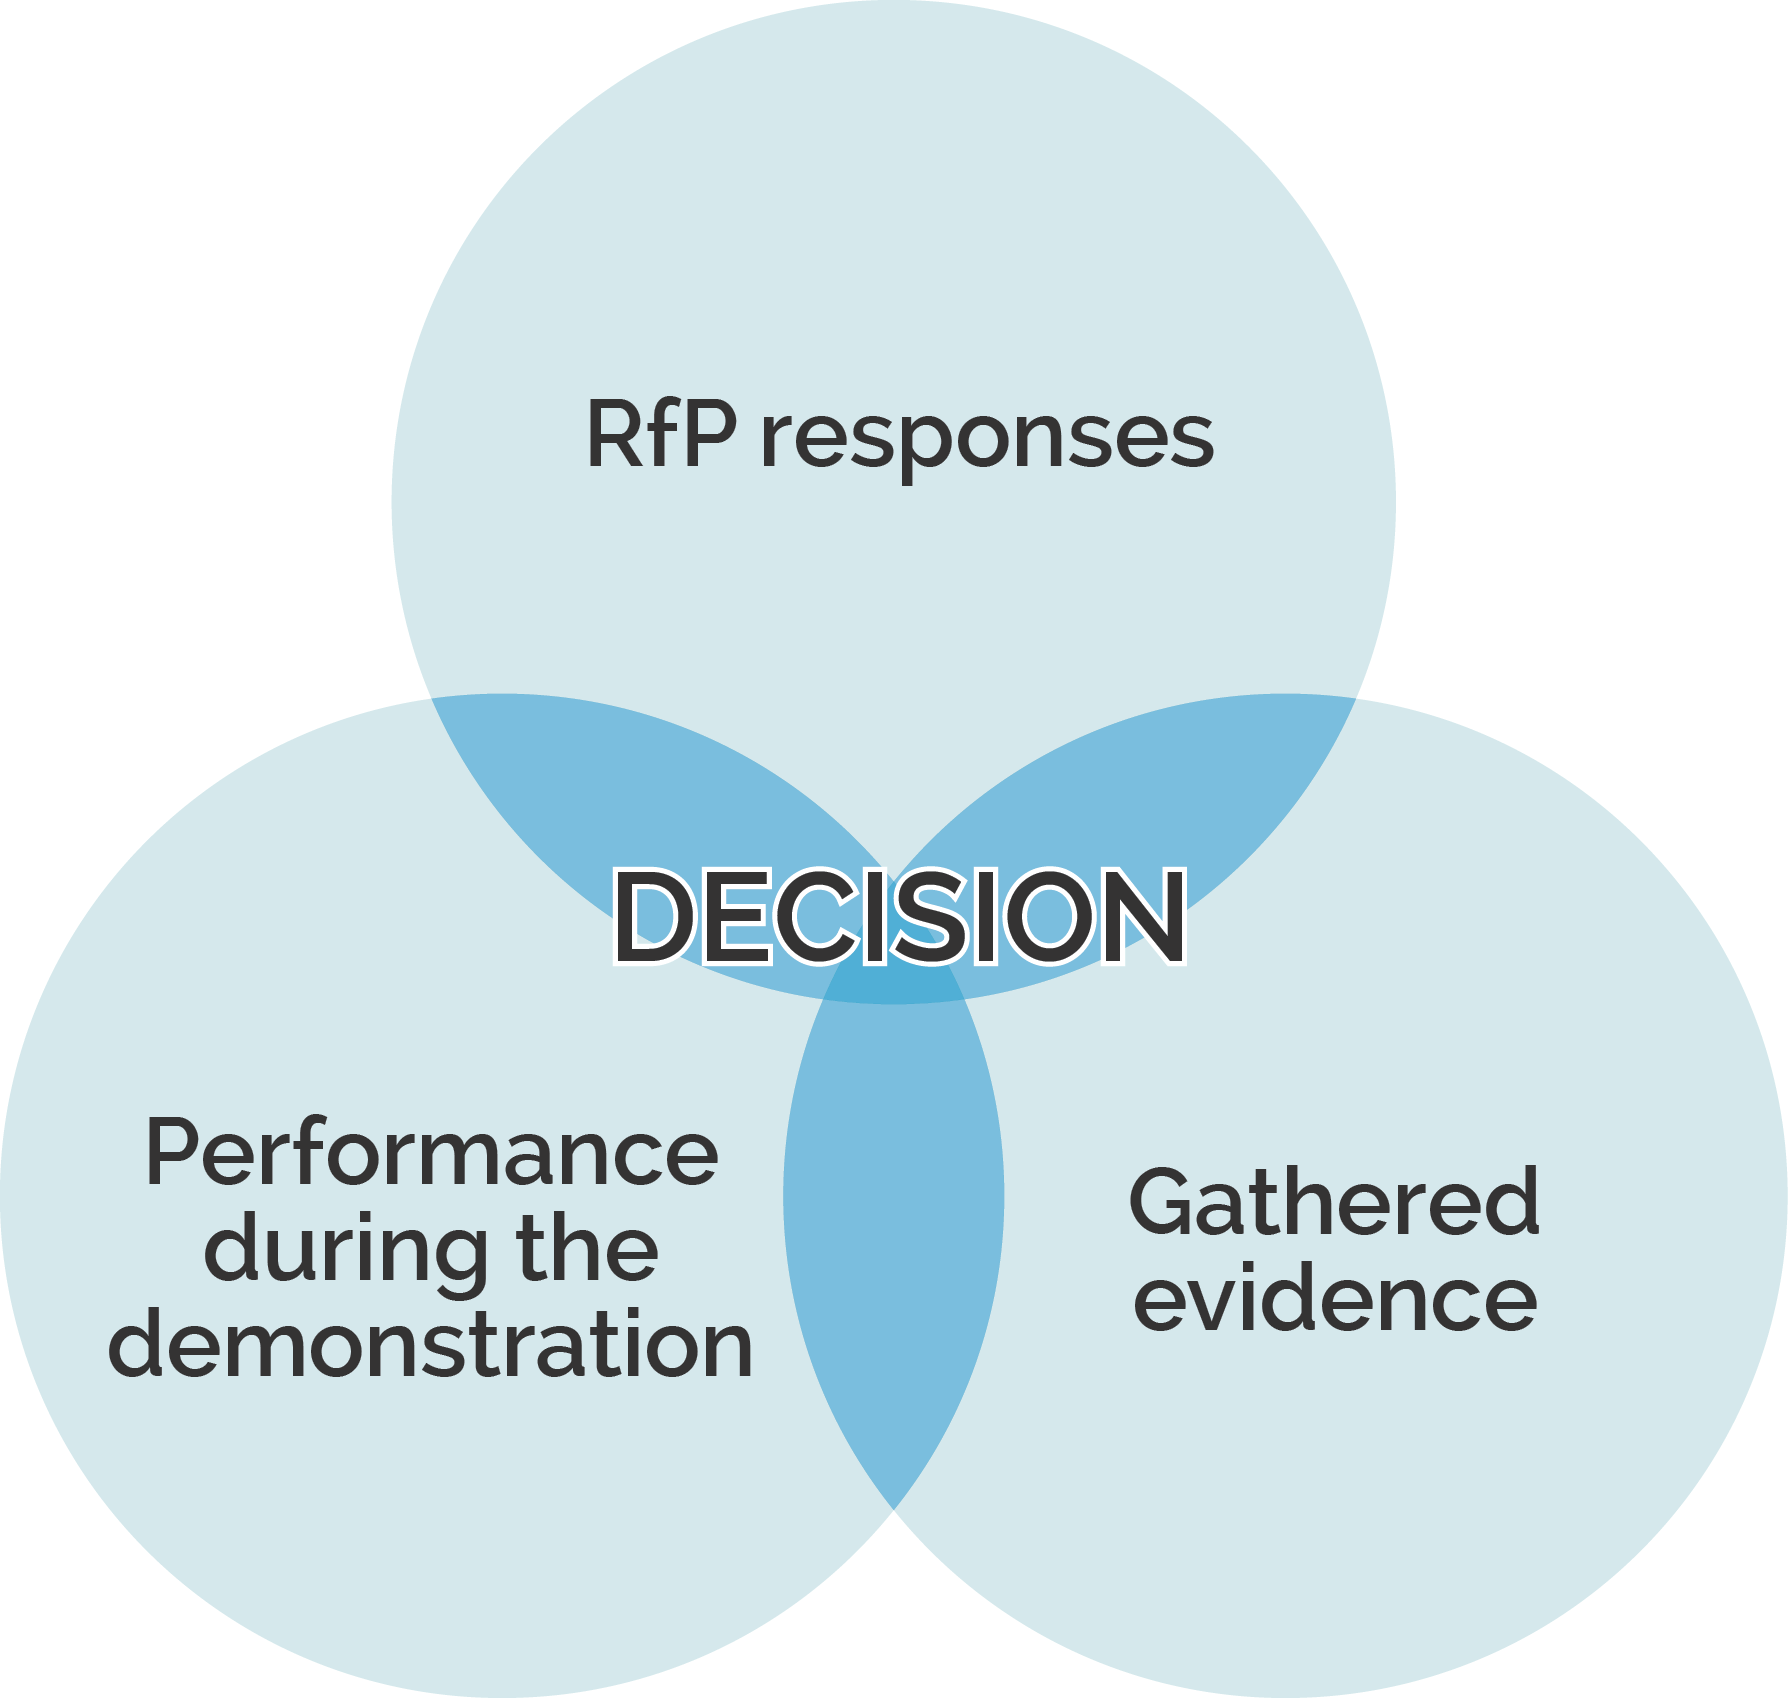 A decision Venn diagram, made up of RfP responses, Performance during demo, and gathered evidence.